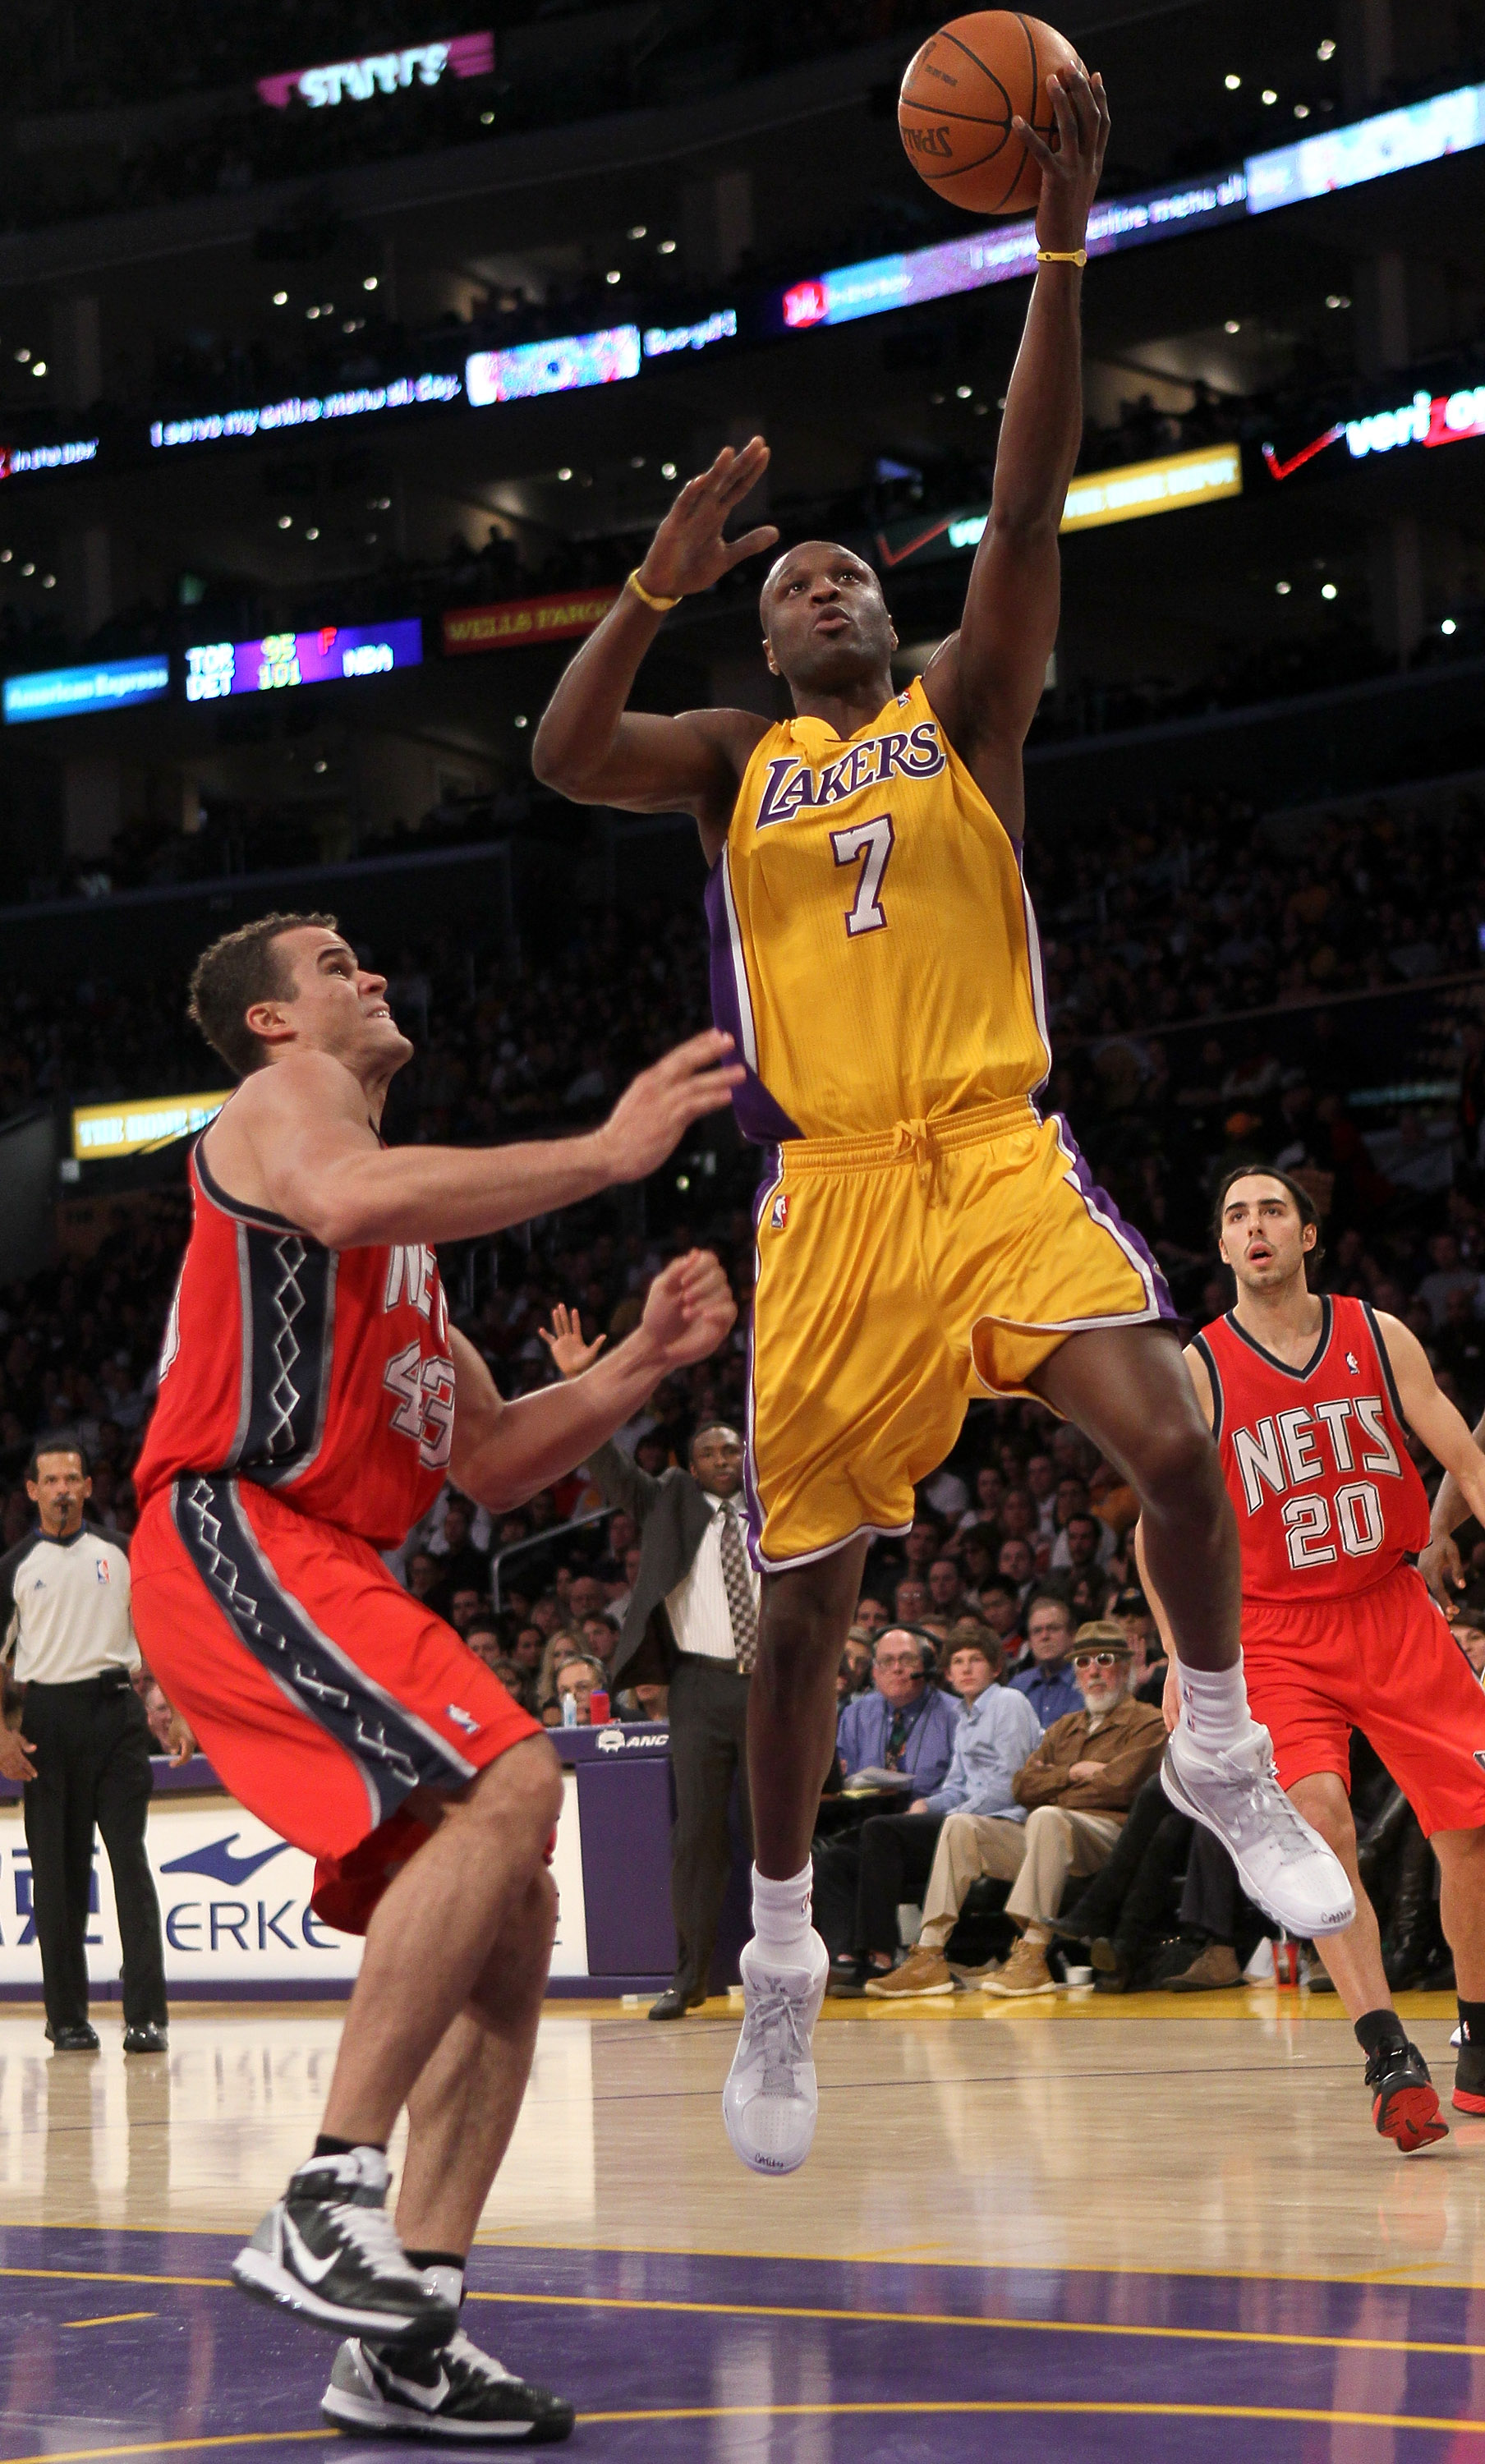 LOS ANGELES, CA - JANUARY 14: Lamar Odom #7 of the Los Angeles Lakers shoots over Kris Humphries #43 of the New Jersey Nets at Staples Center on January 14, 2011 in Los Angeles, California. The Lakers won 100-88.  NOTE TO USER: User expressly acknowledges